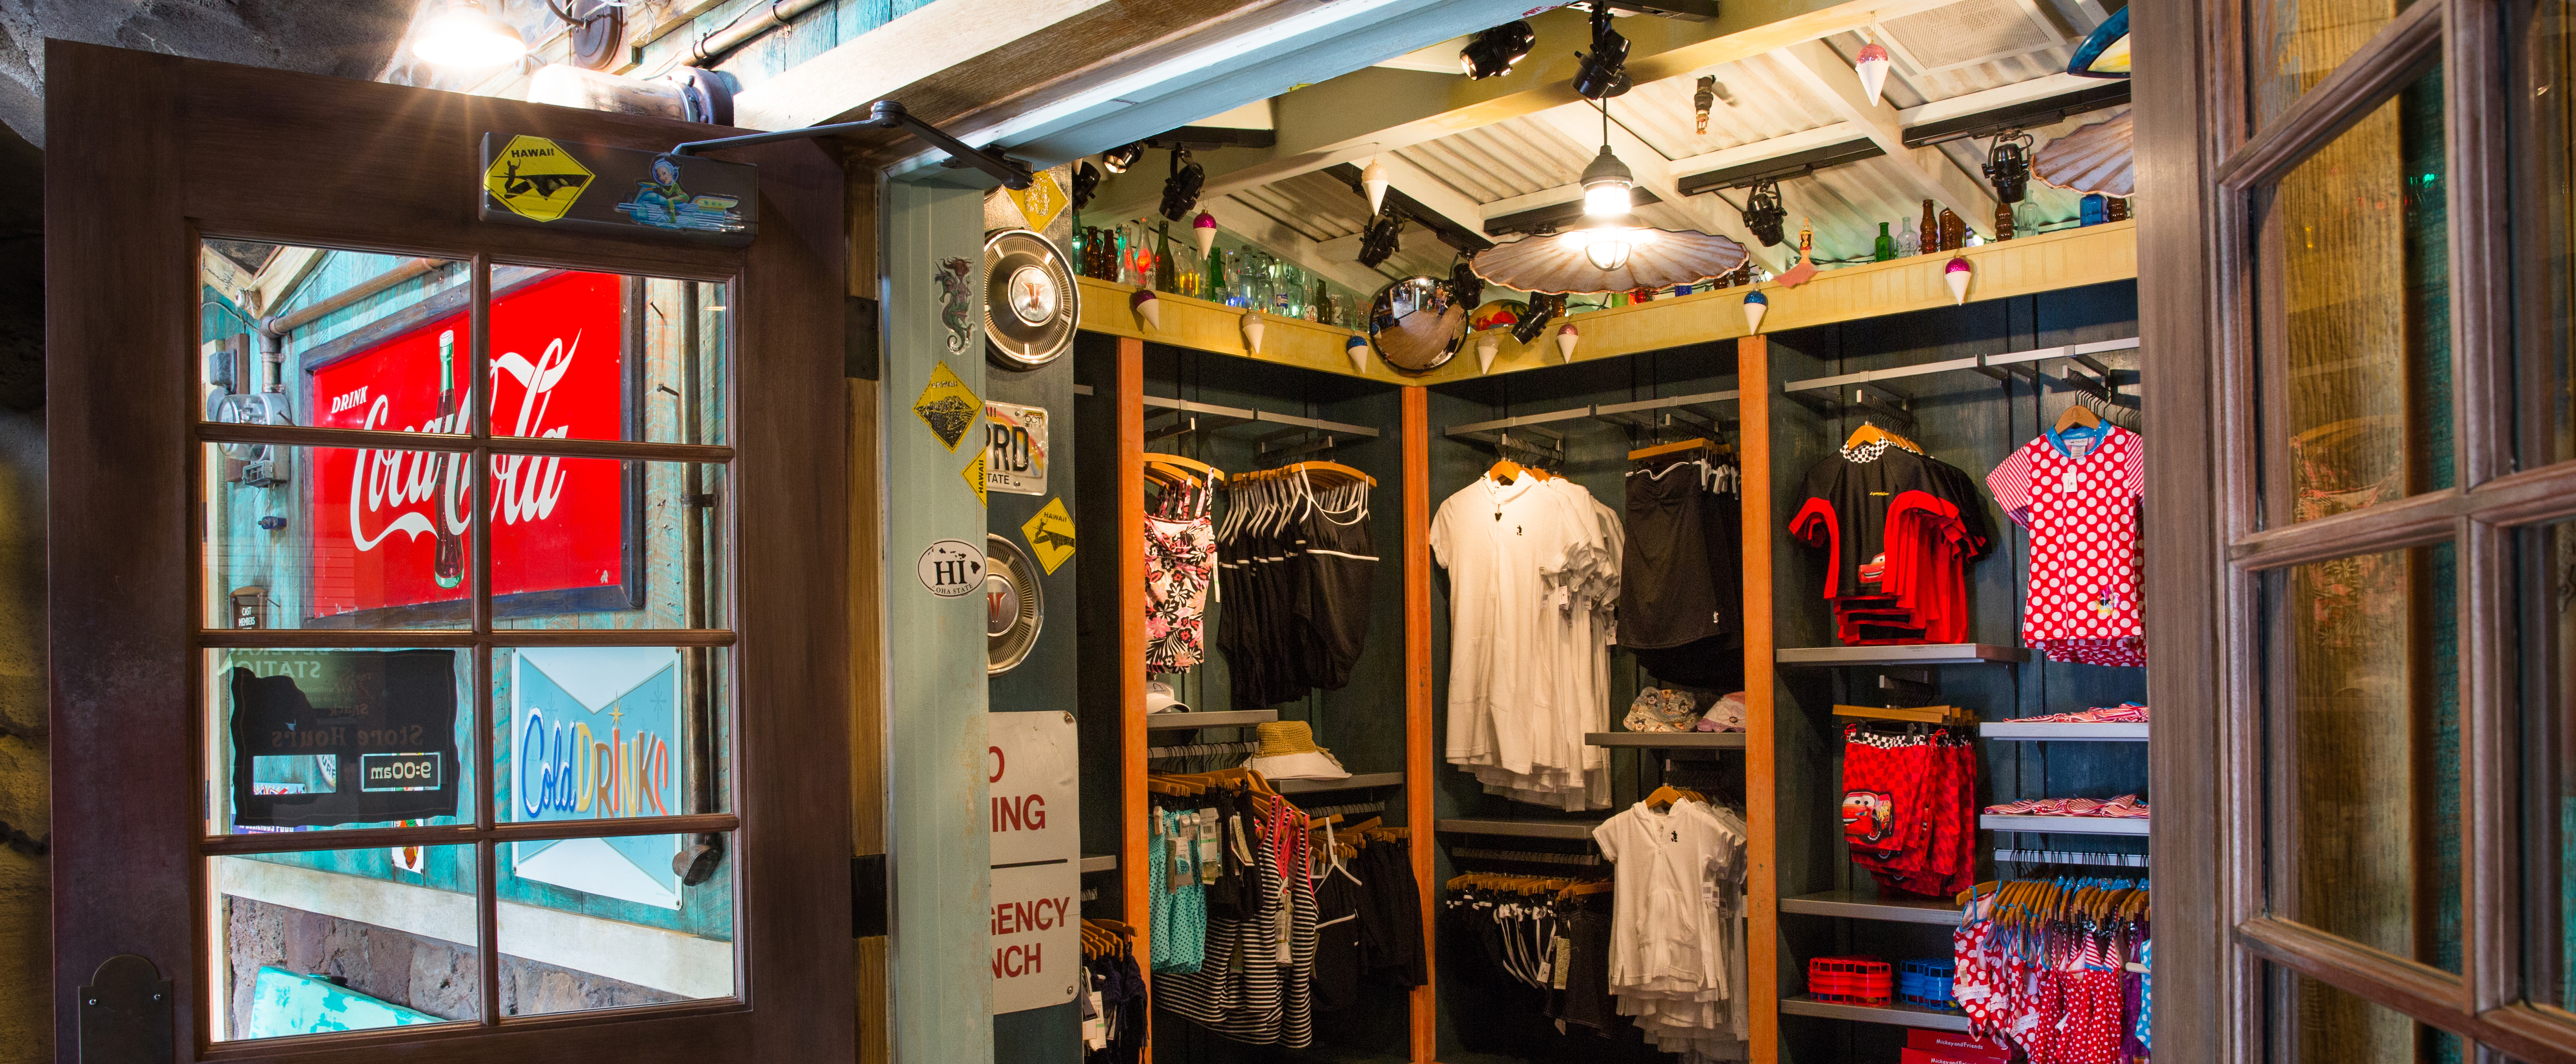 The open doors of Lava Shack snack shop, showing swim and beach wear hanging on wall racks